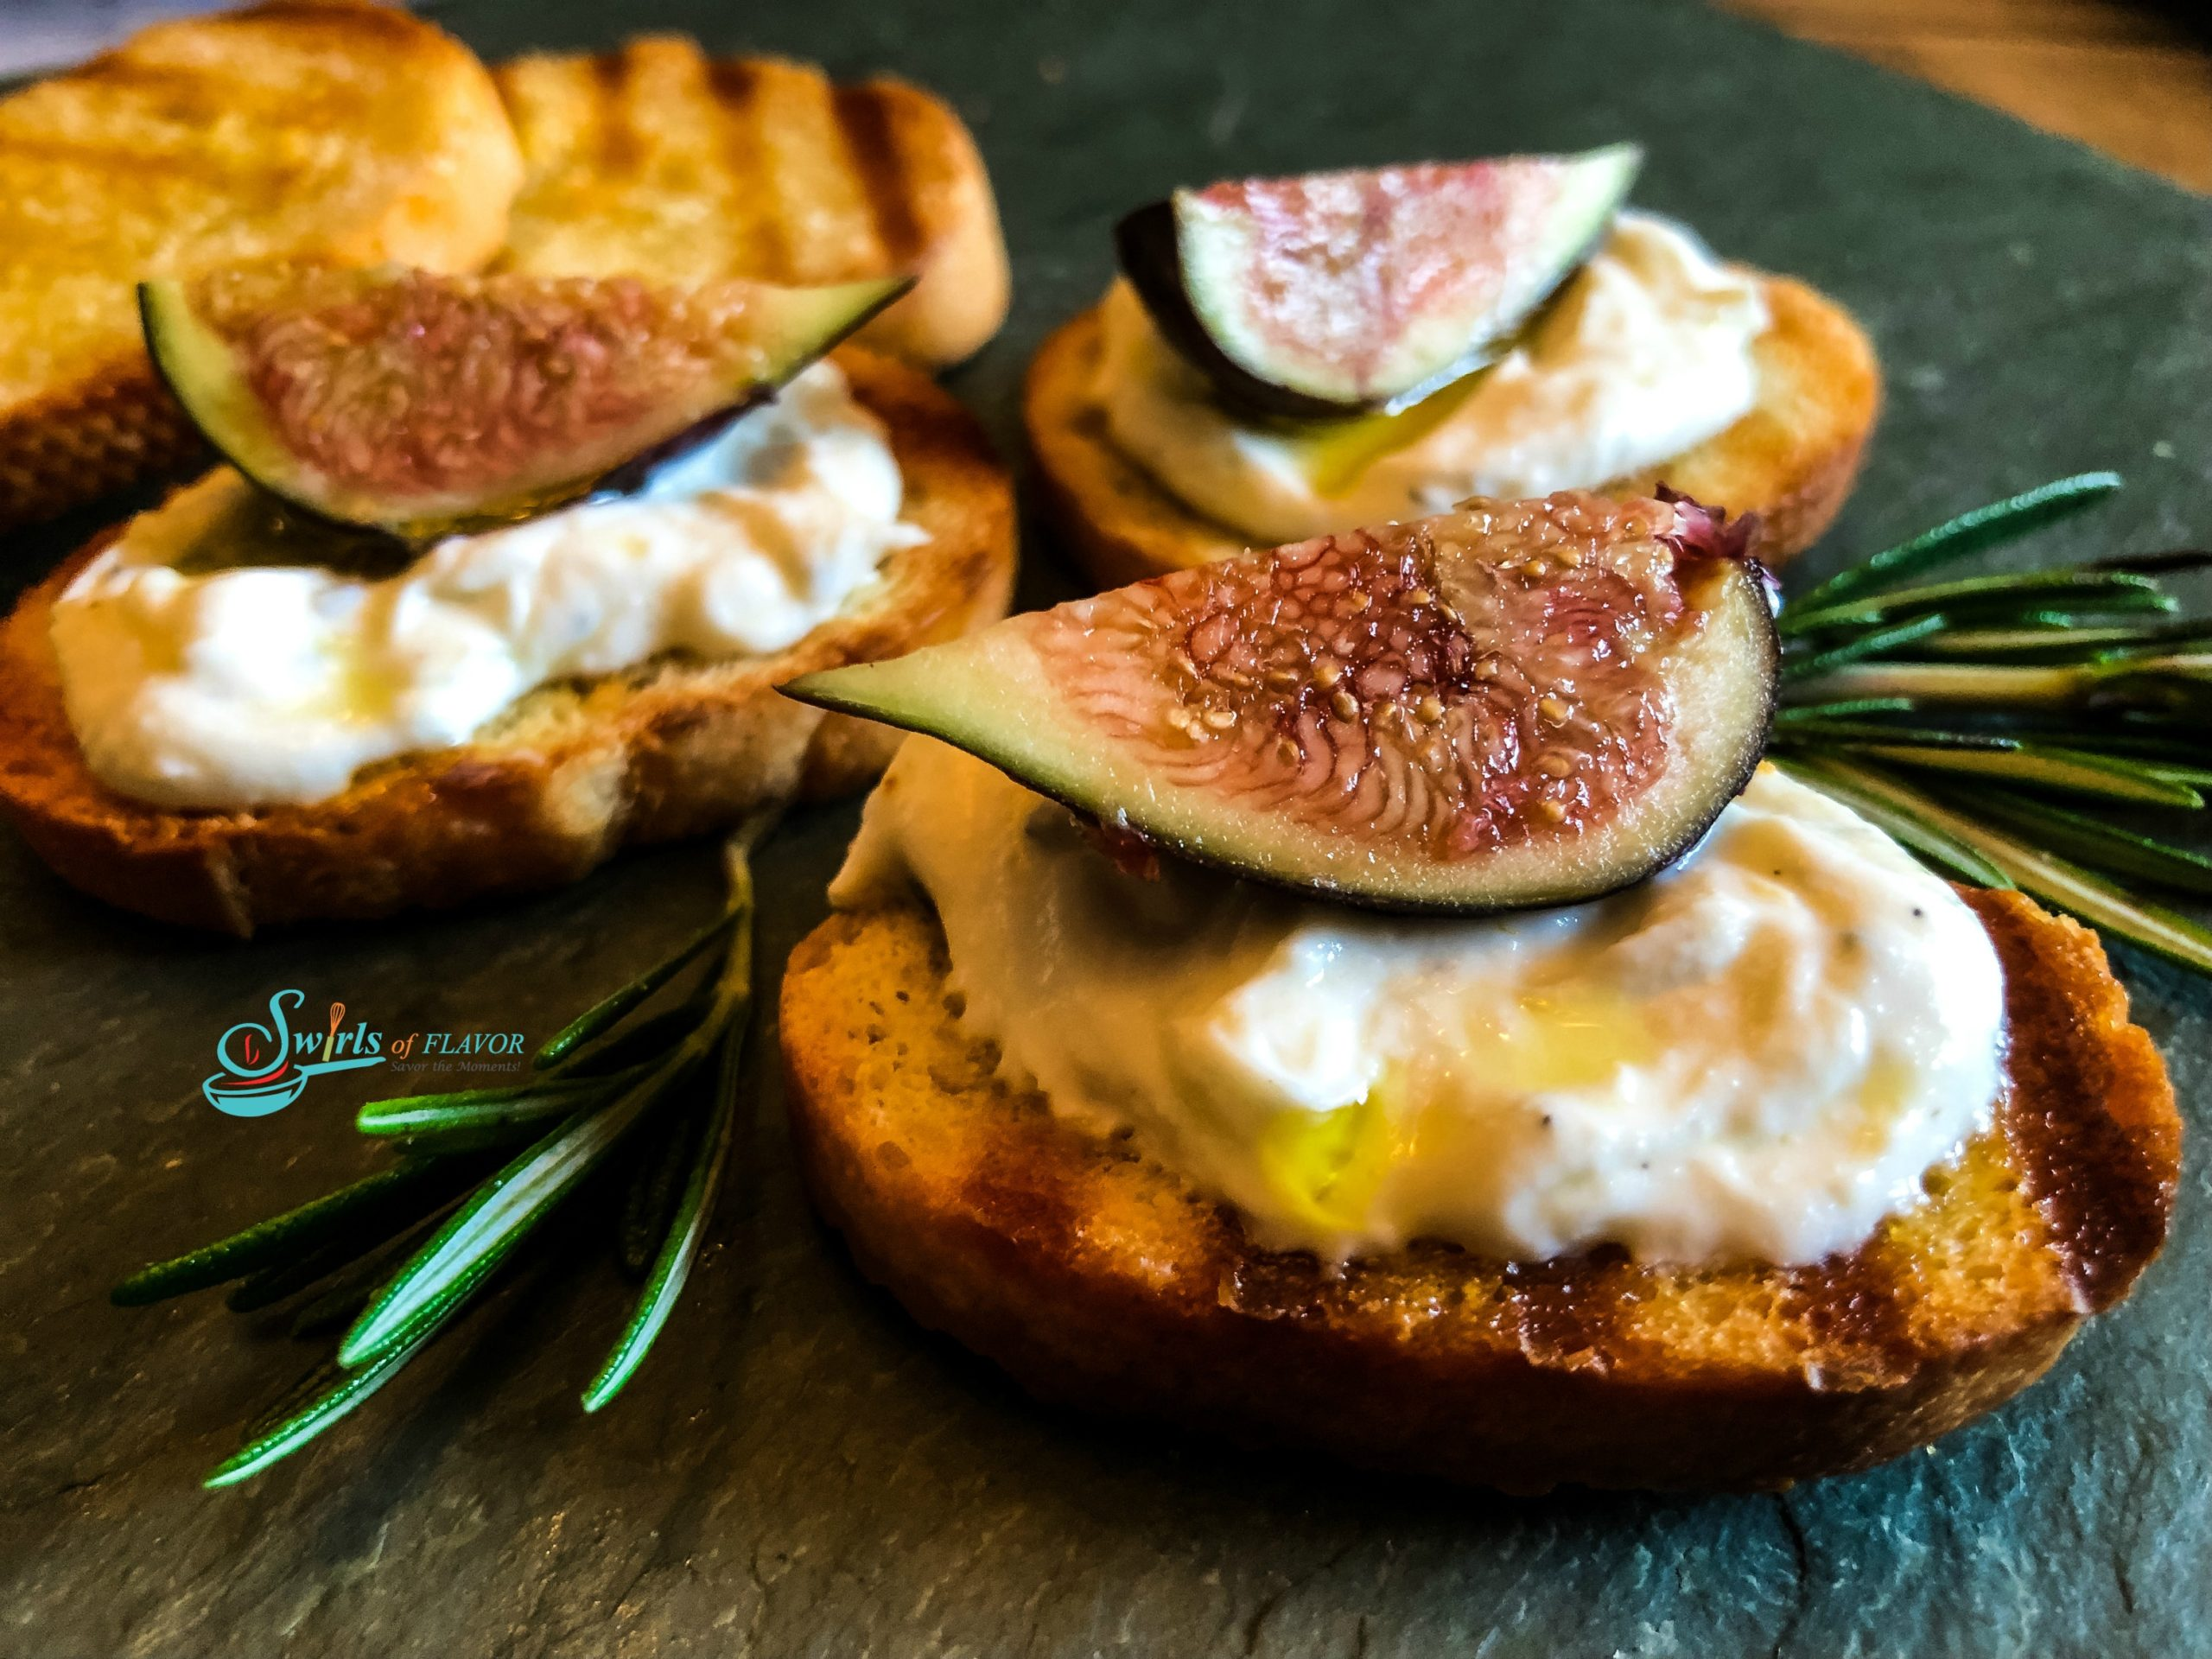 Ricotta Dip on toasts with frresh figs